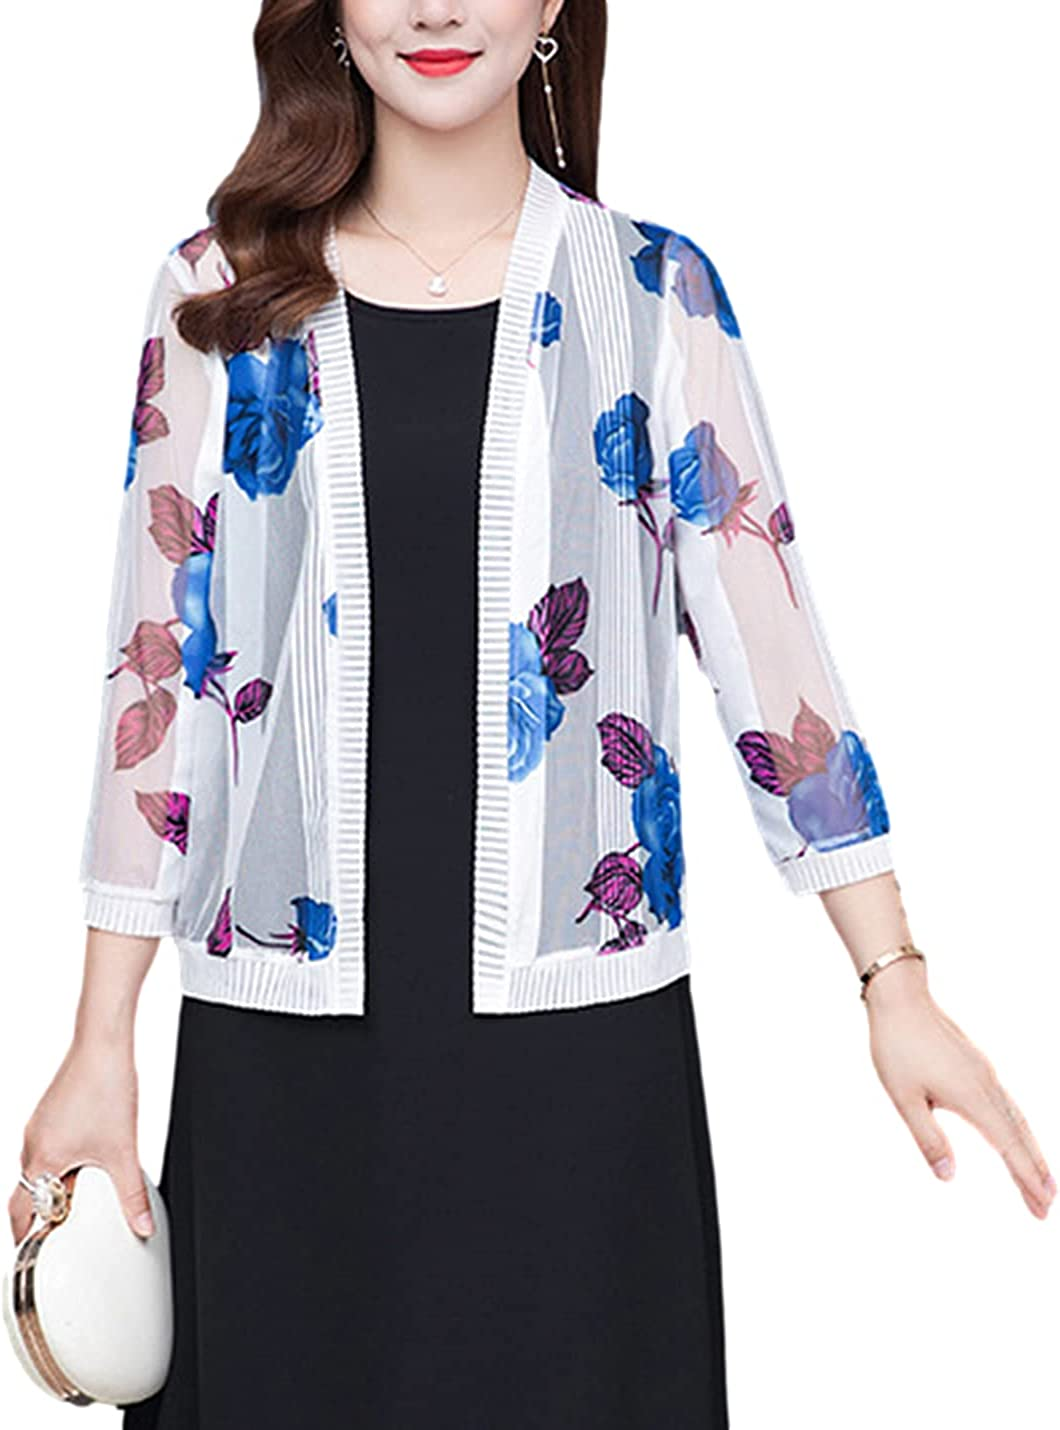 FindThy Women's Floral Print Lace Cardigan Sheer 3/4 Sleeve Ribbed Shrug Jacket Knitwear